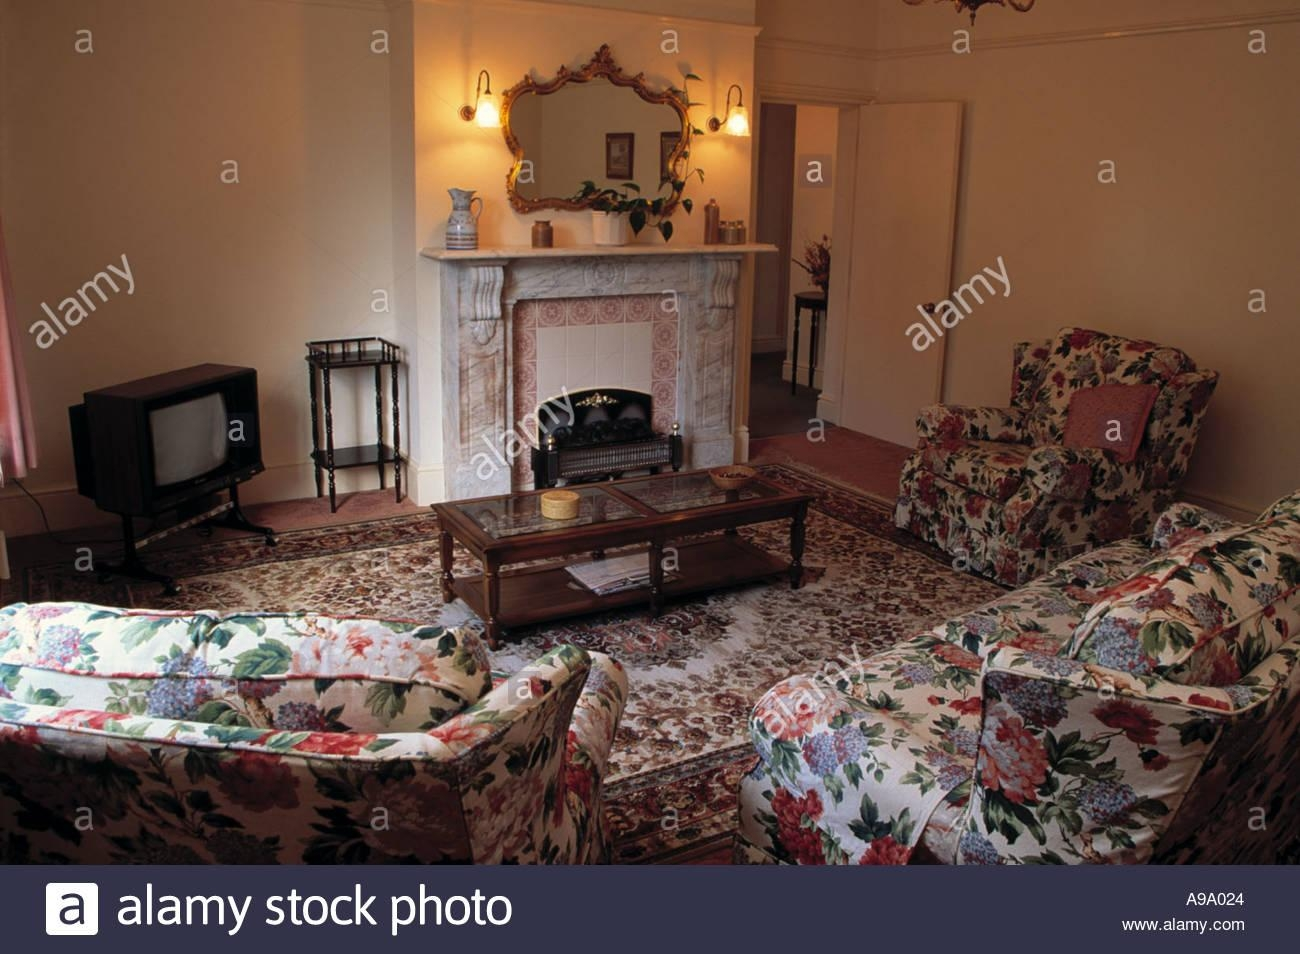 Sofas Armchairs In Living Room Stock Photos & Sofas Armchairs In Within Chintz Sofas And Chairs (View 11 of 20)